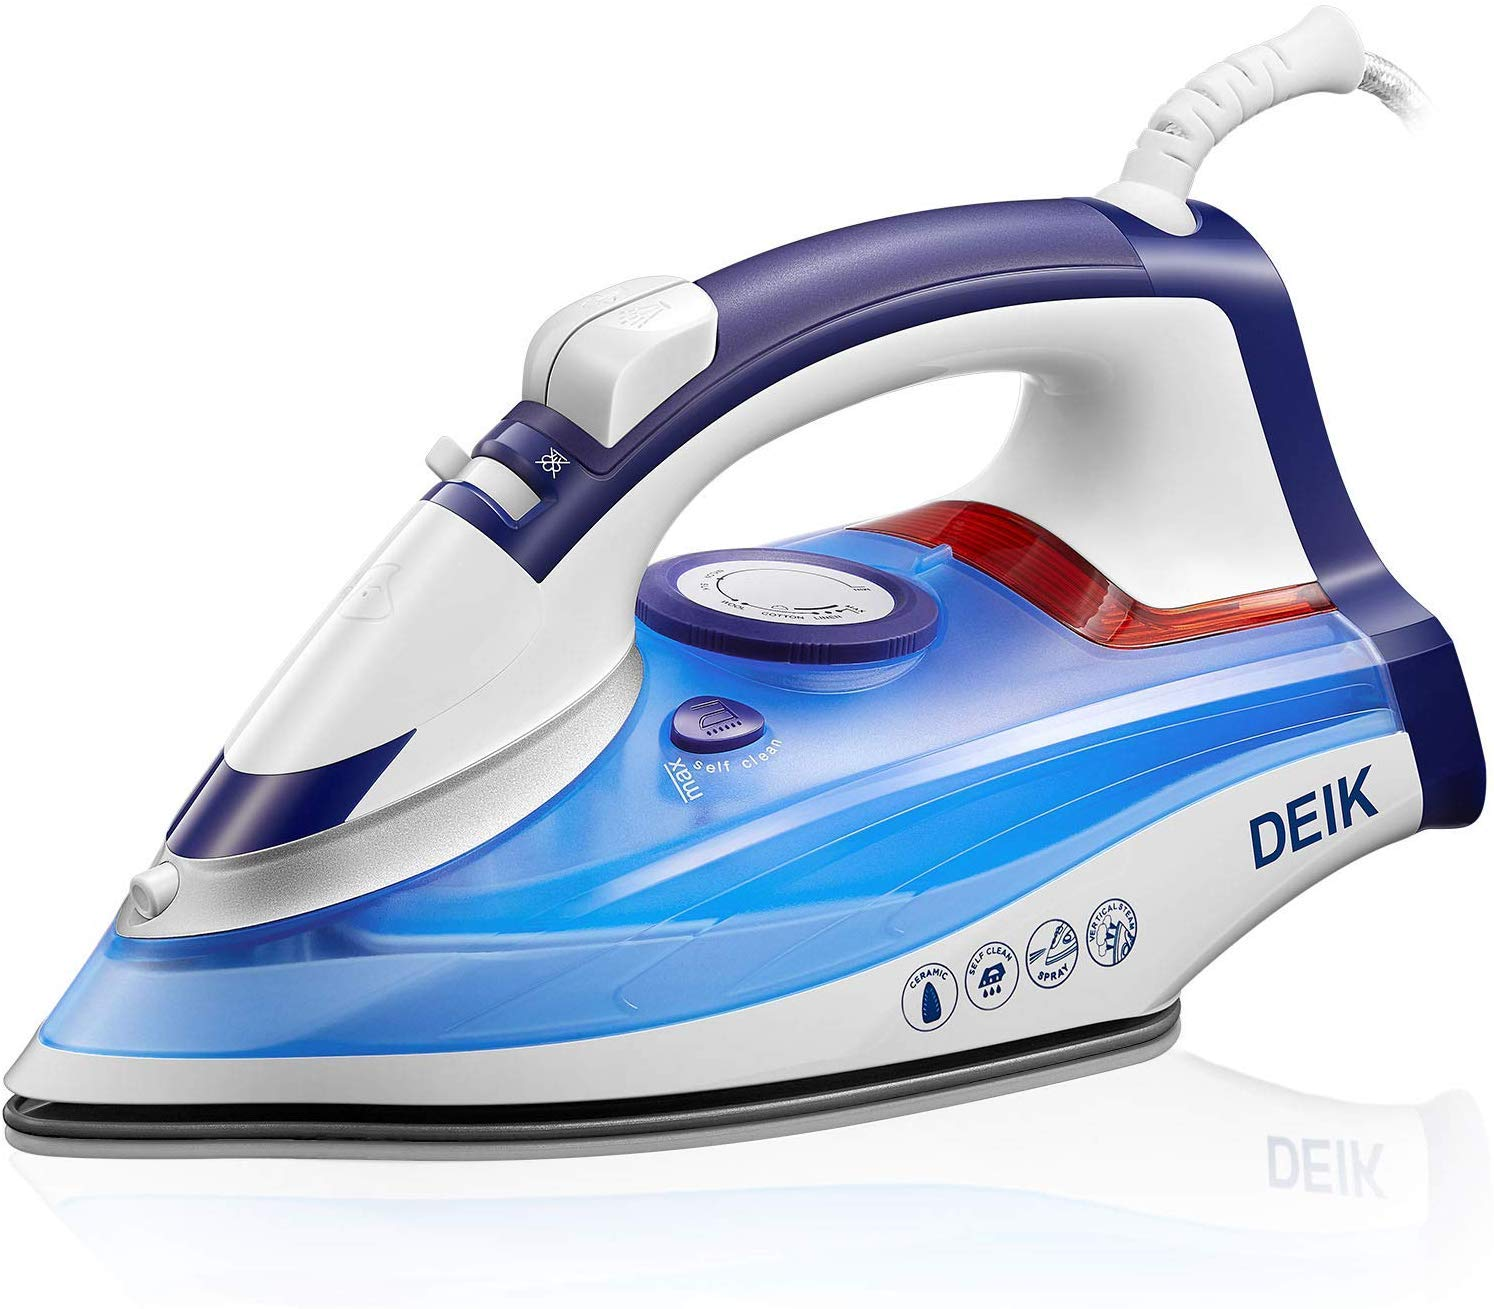 Deik Steam Iron Reviews